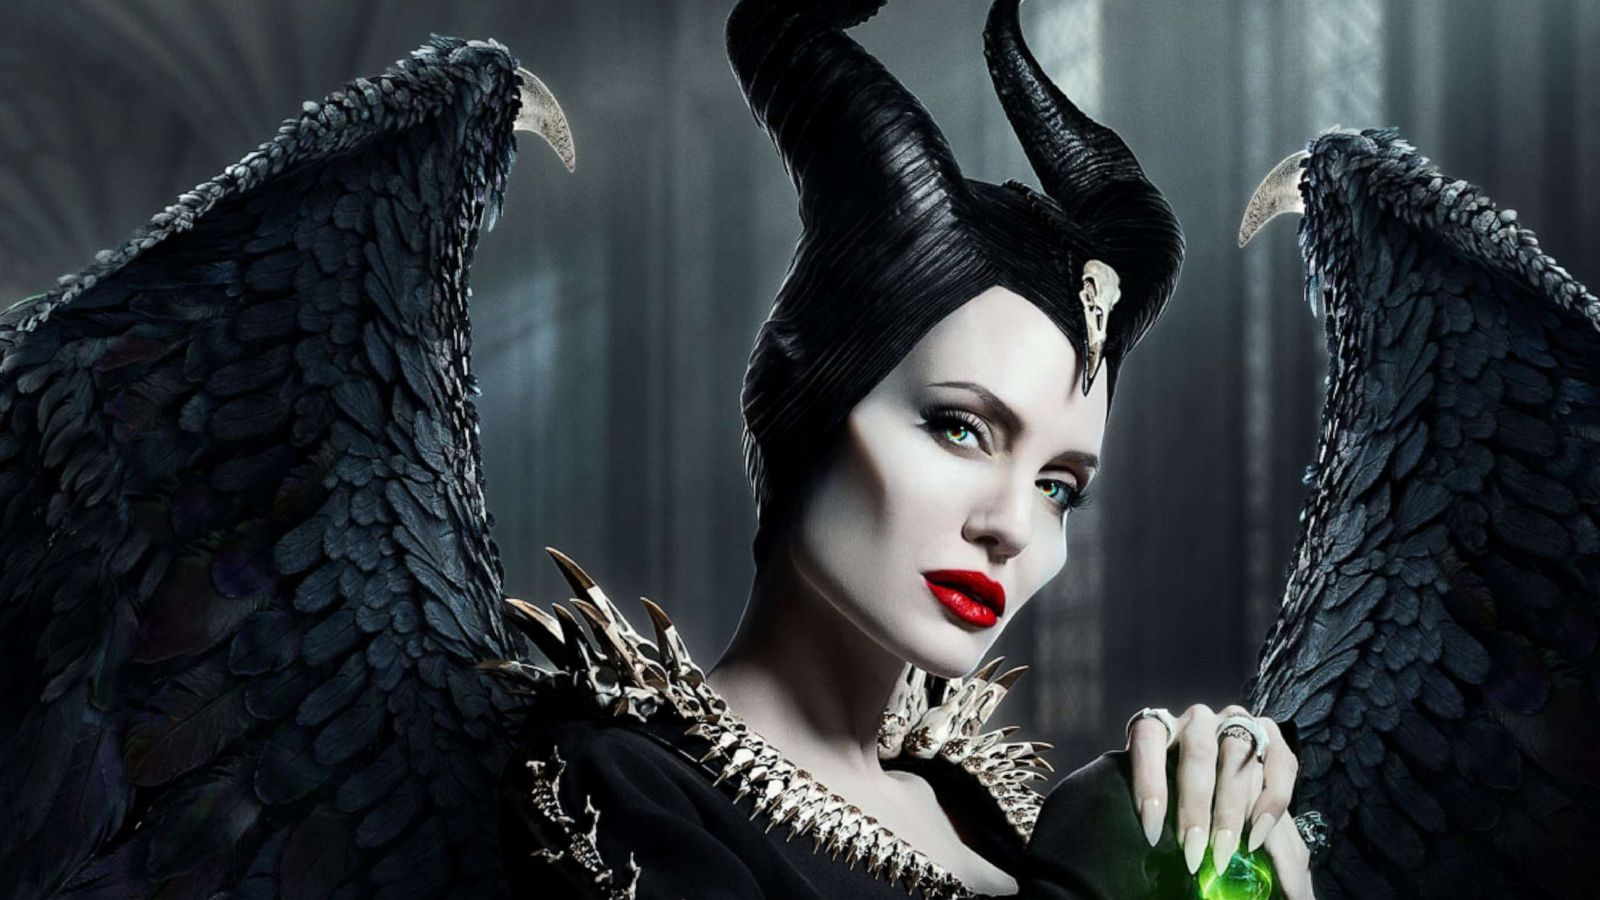 Angelina Jolie Porn Look A Like how to get angelina jolie's 'maleficent' beauty look for